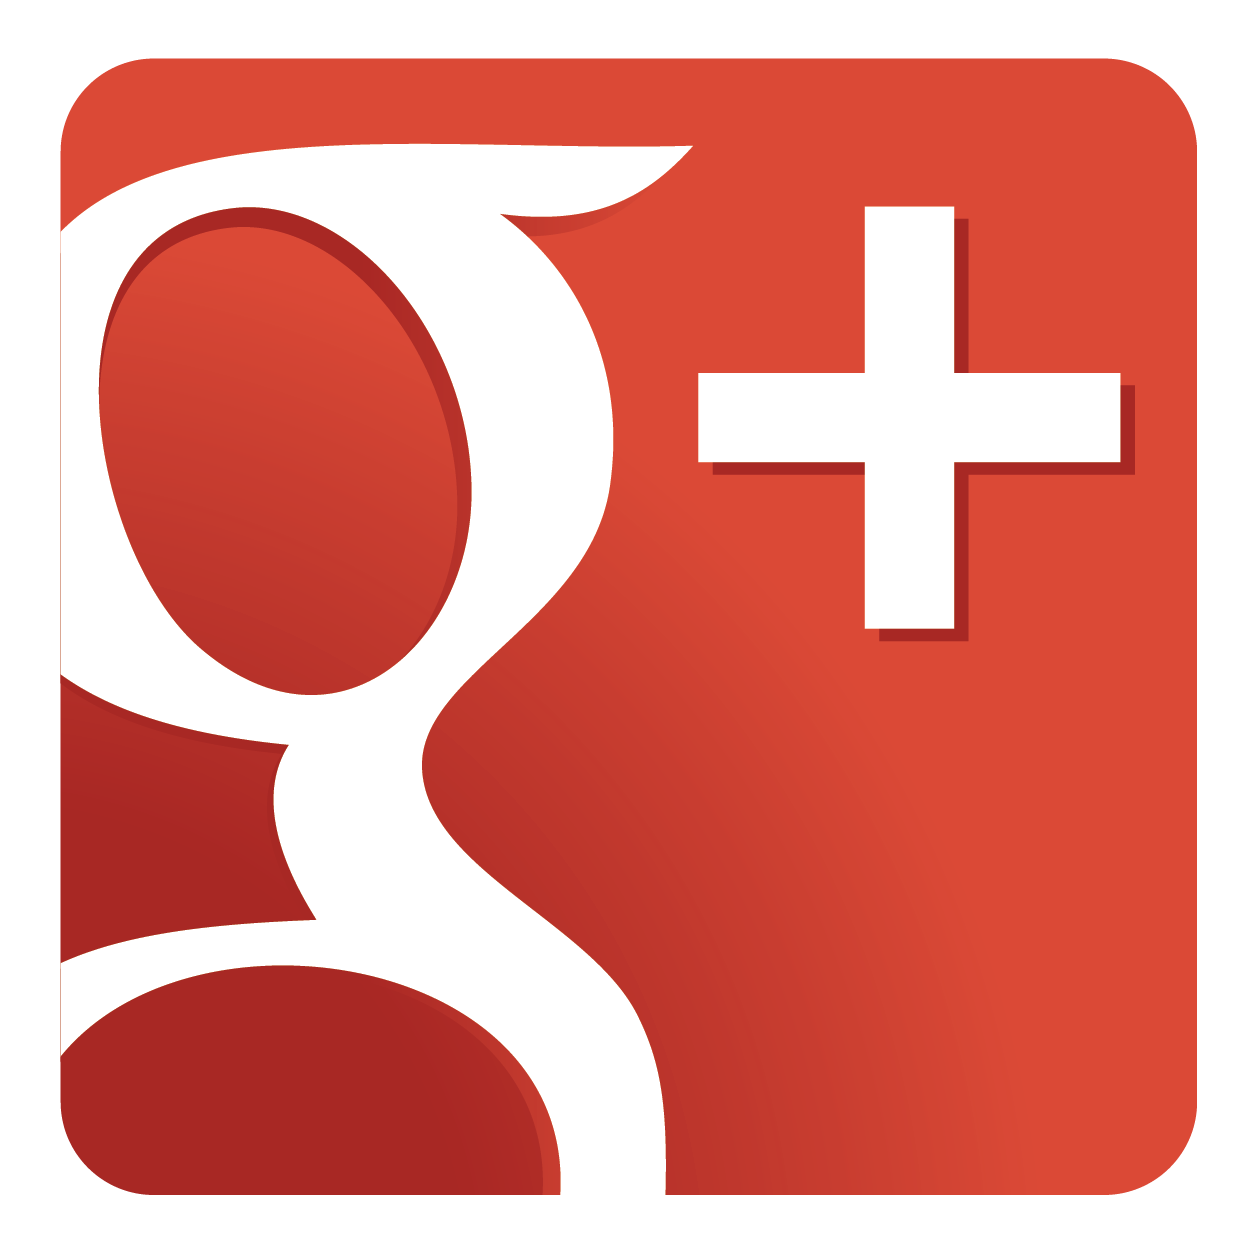 Our profile on Google+